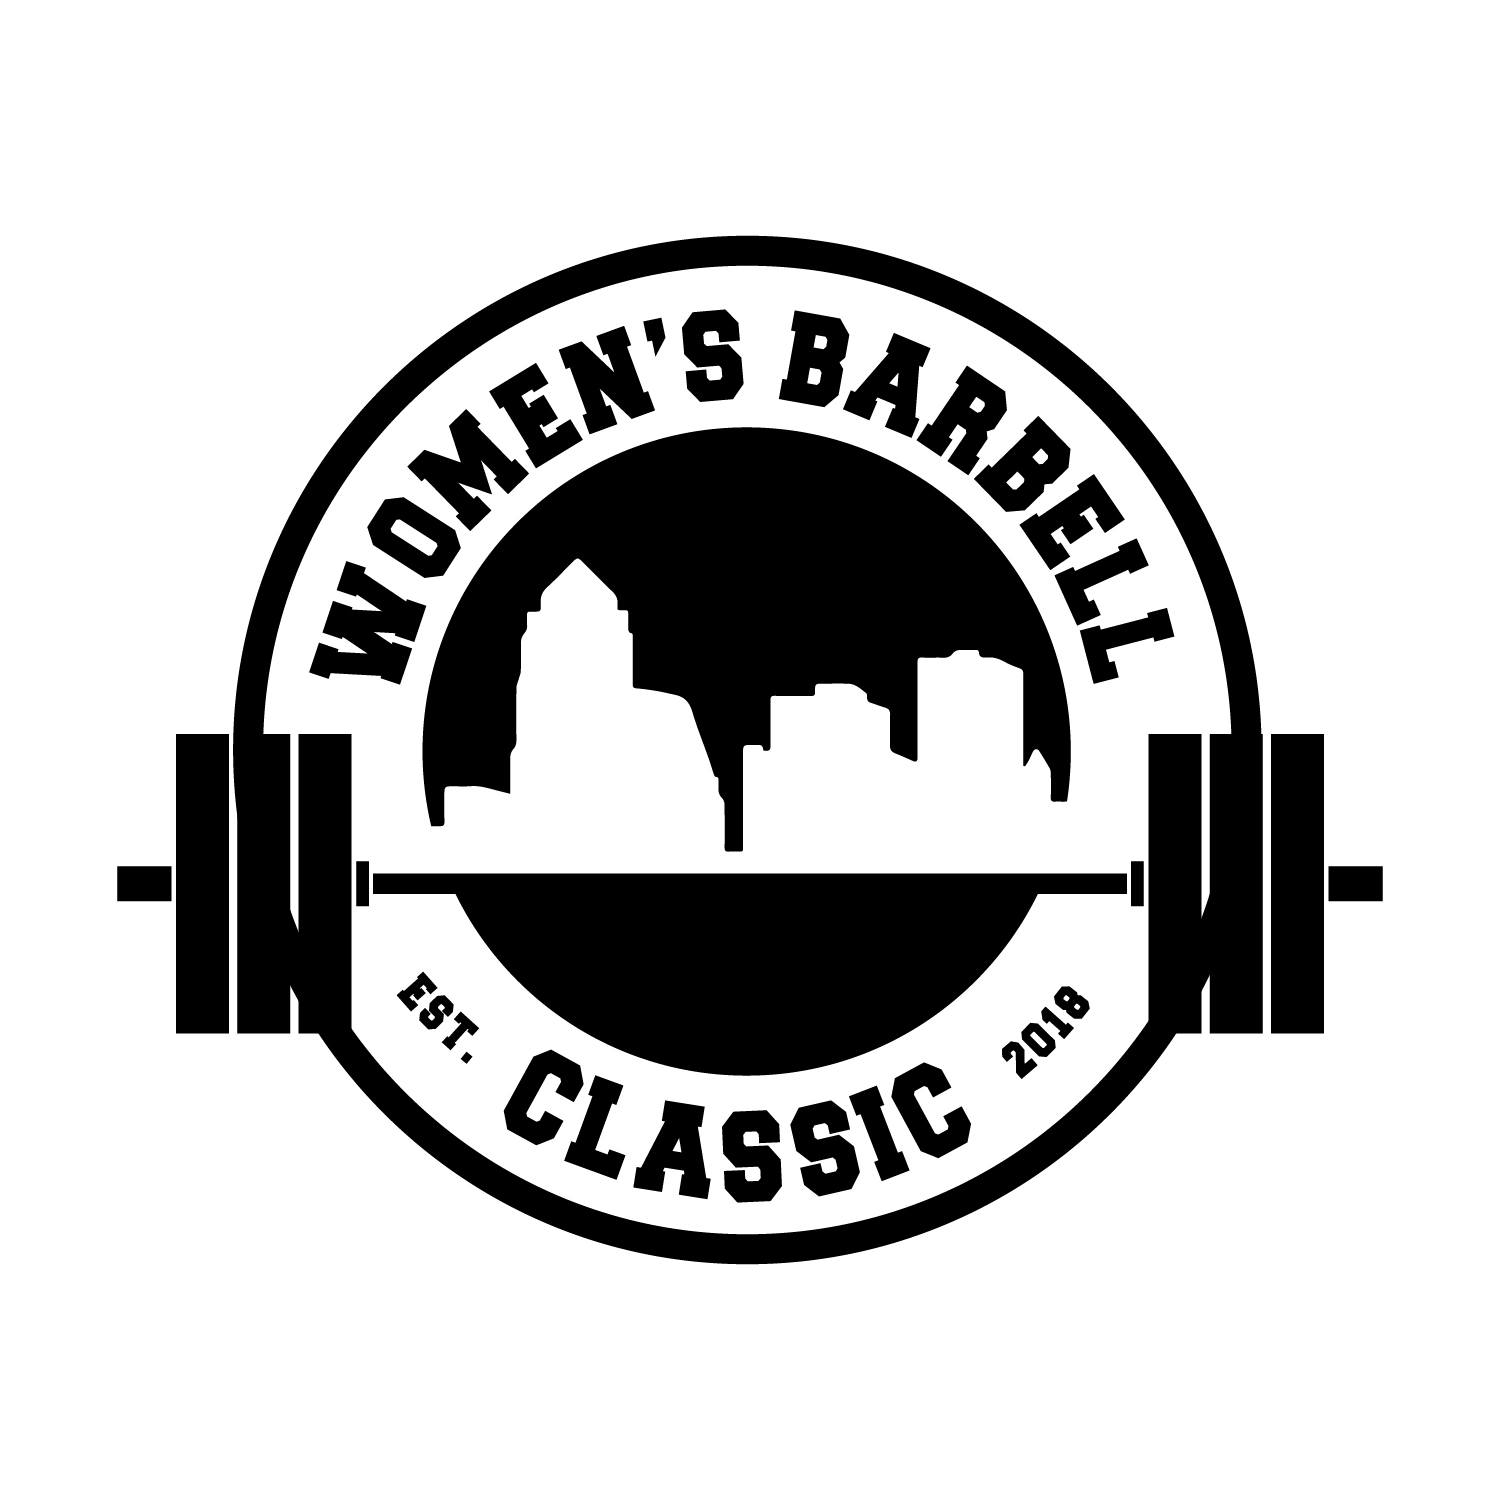 Women's Barbell Classic